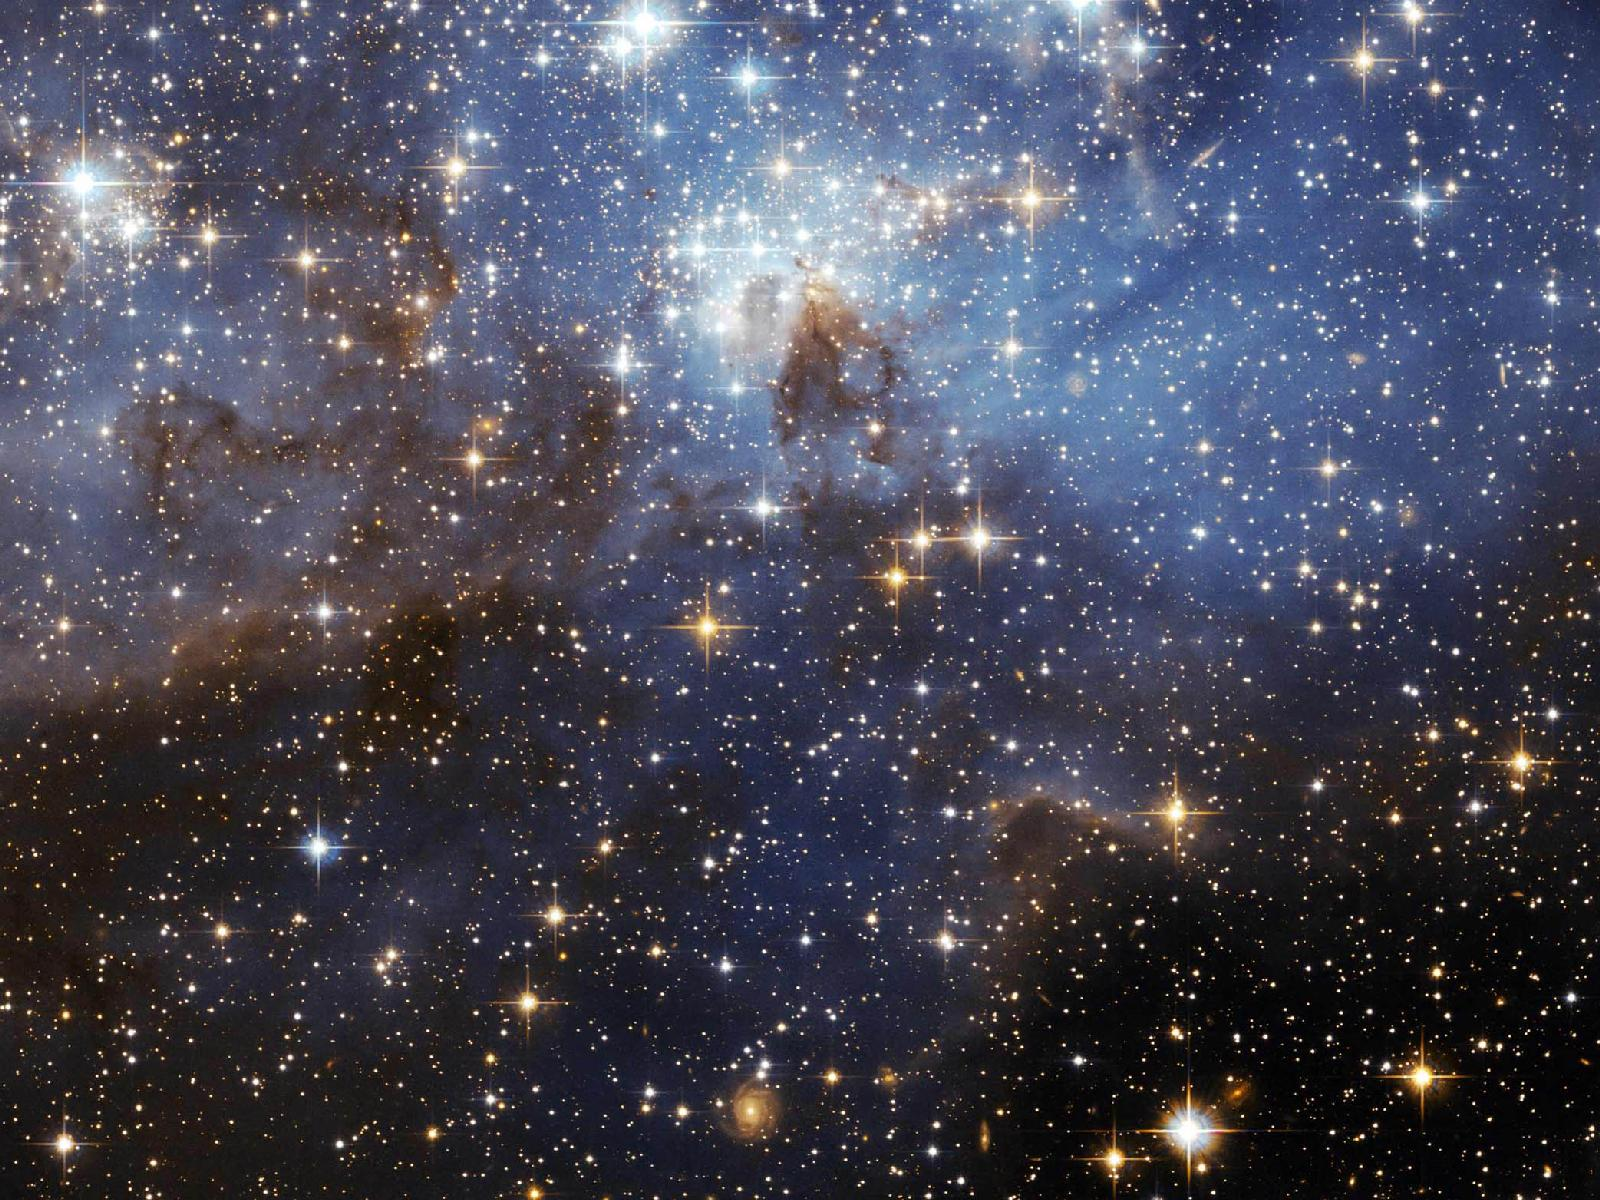 We should explore space as a world common goal